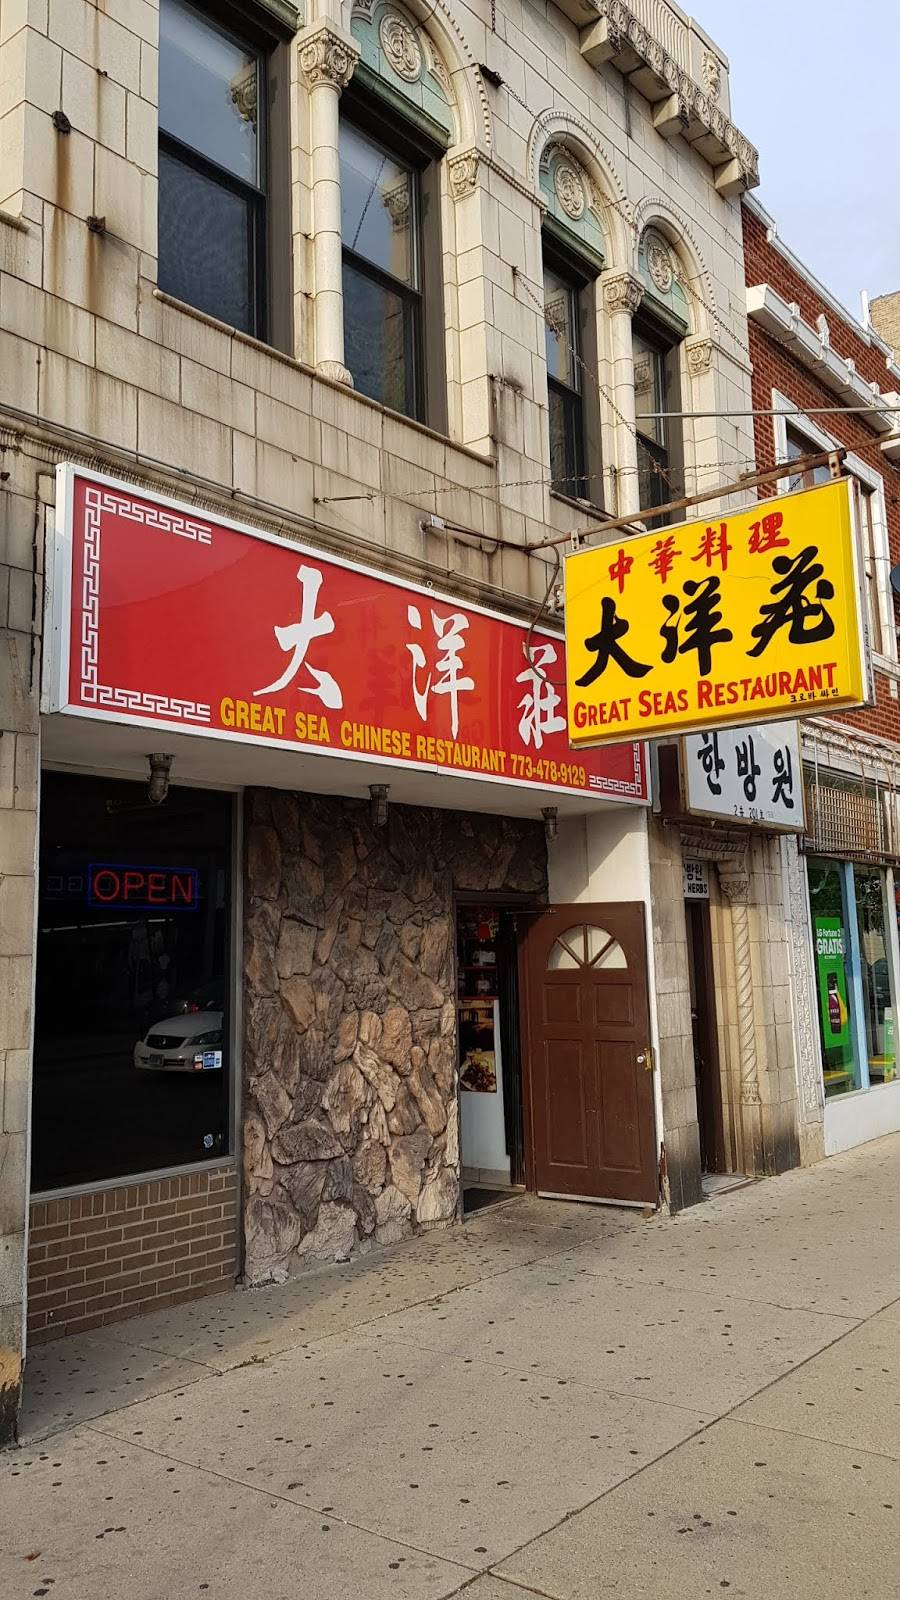 Great Sea Restaurant | 3254 W Lawrence Ave, Chicago, IL